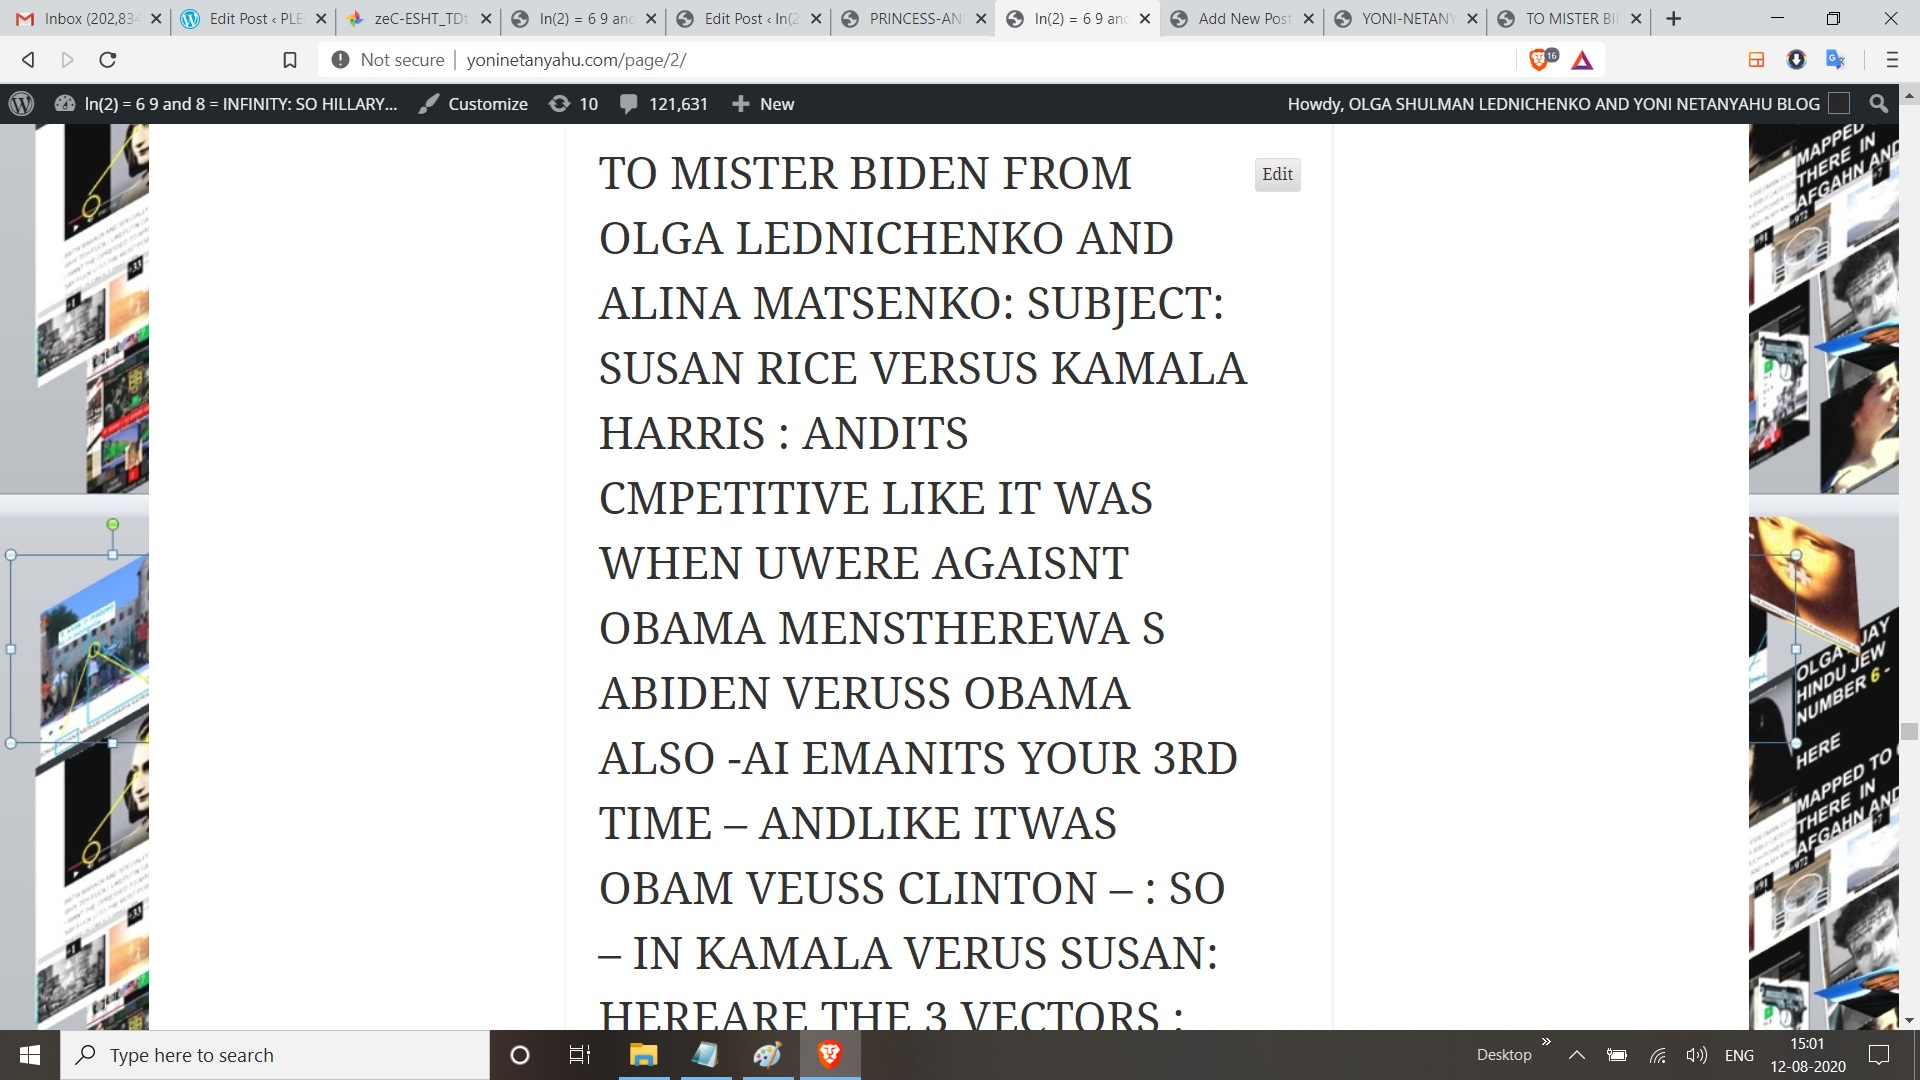 ABOUT KAMALA HARRIS FROM OLGA LEDNICHENKO AND ALINA MATSENKOO ADET AUSGUST 11, 2020 IN INDIAN TIME EMANS AUGSUT 10, 2020 R AUSGUT 11, 2020 IN USA TIME